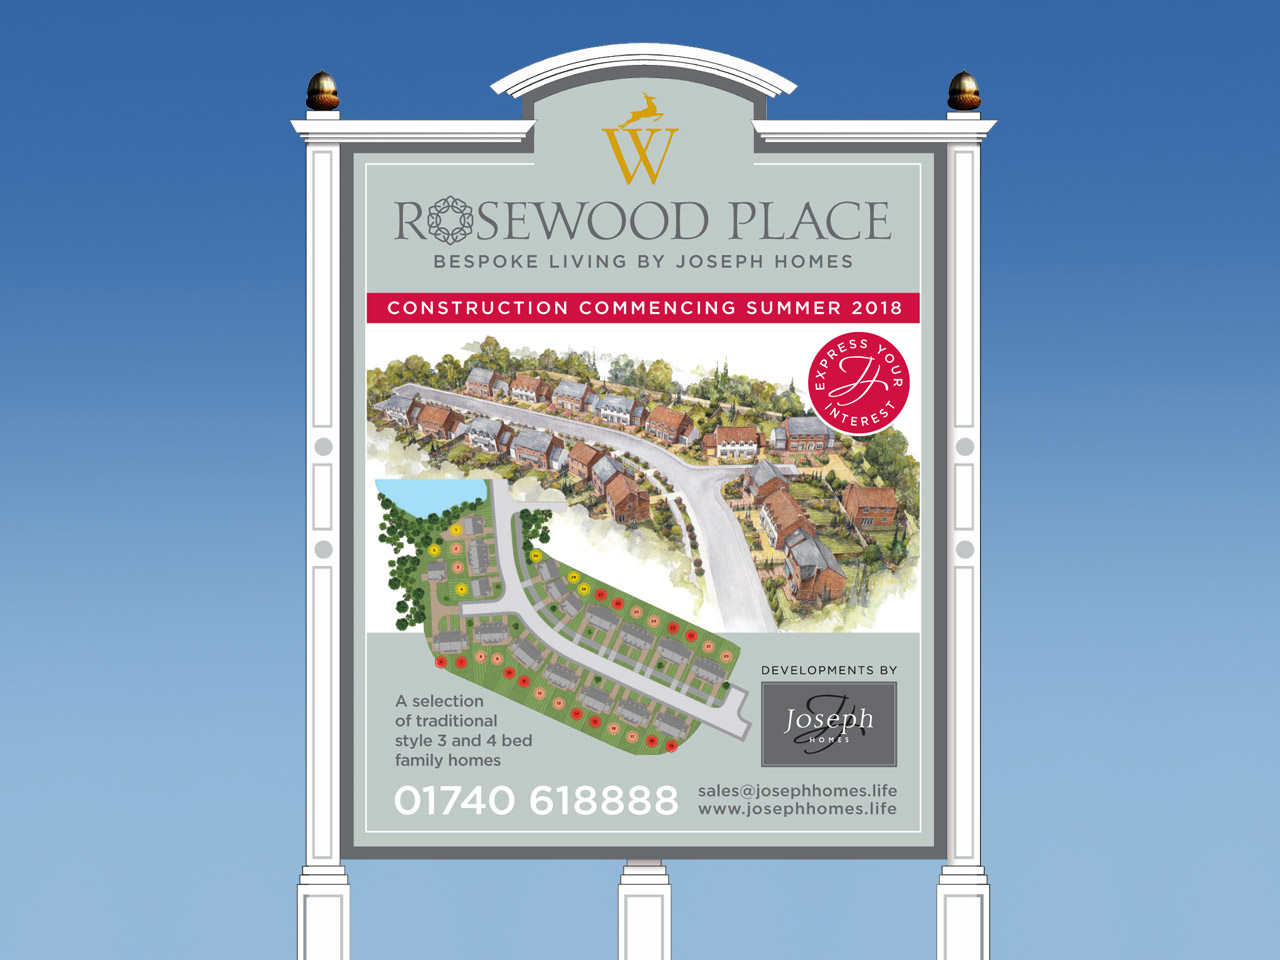 Rosewood Place site signage